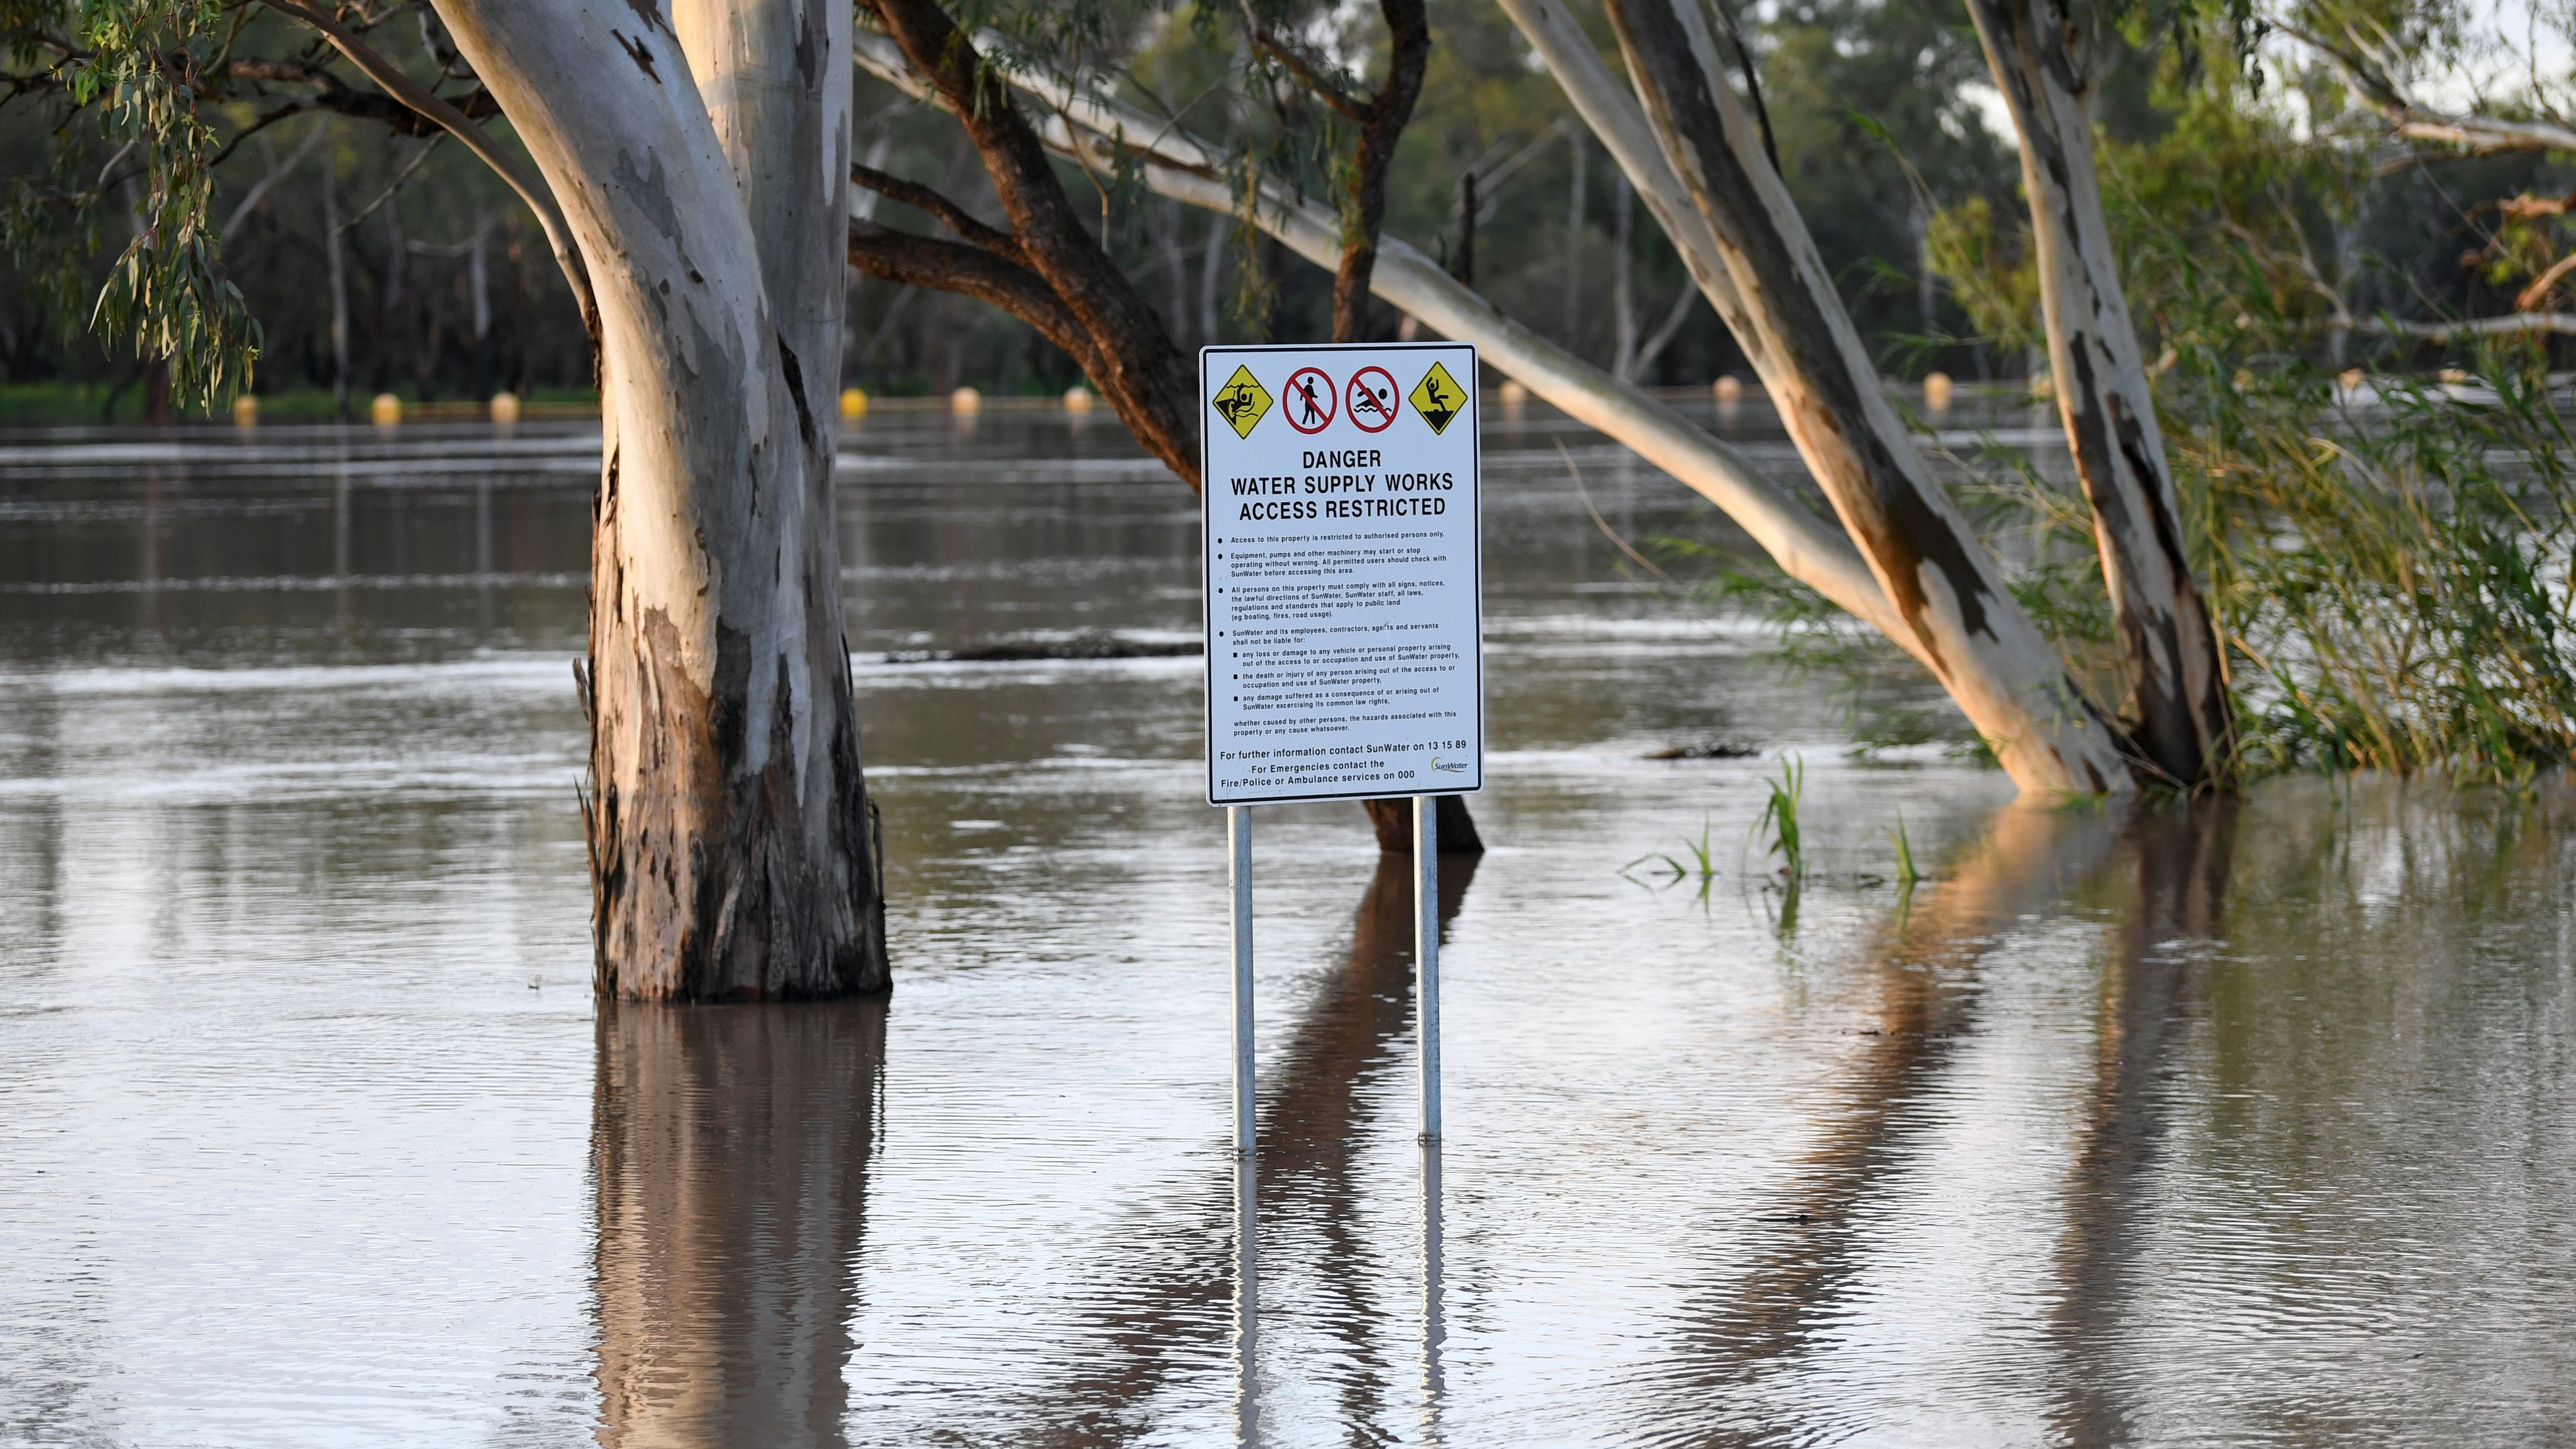 Flood waters pose risk to homes in Queensland after unexpected rainfall